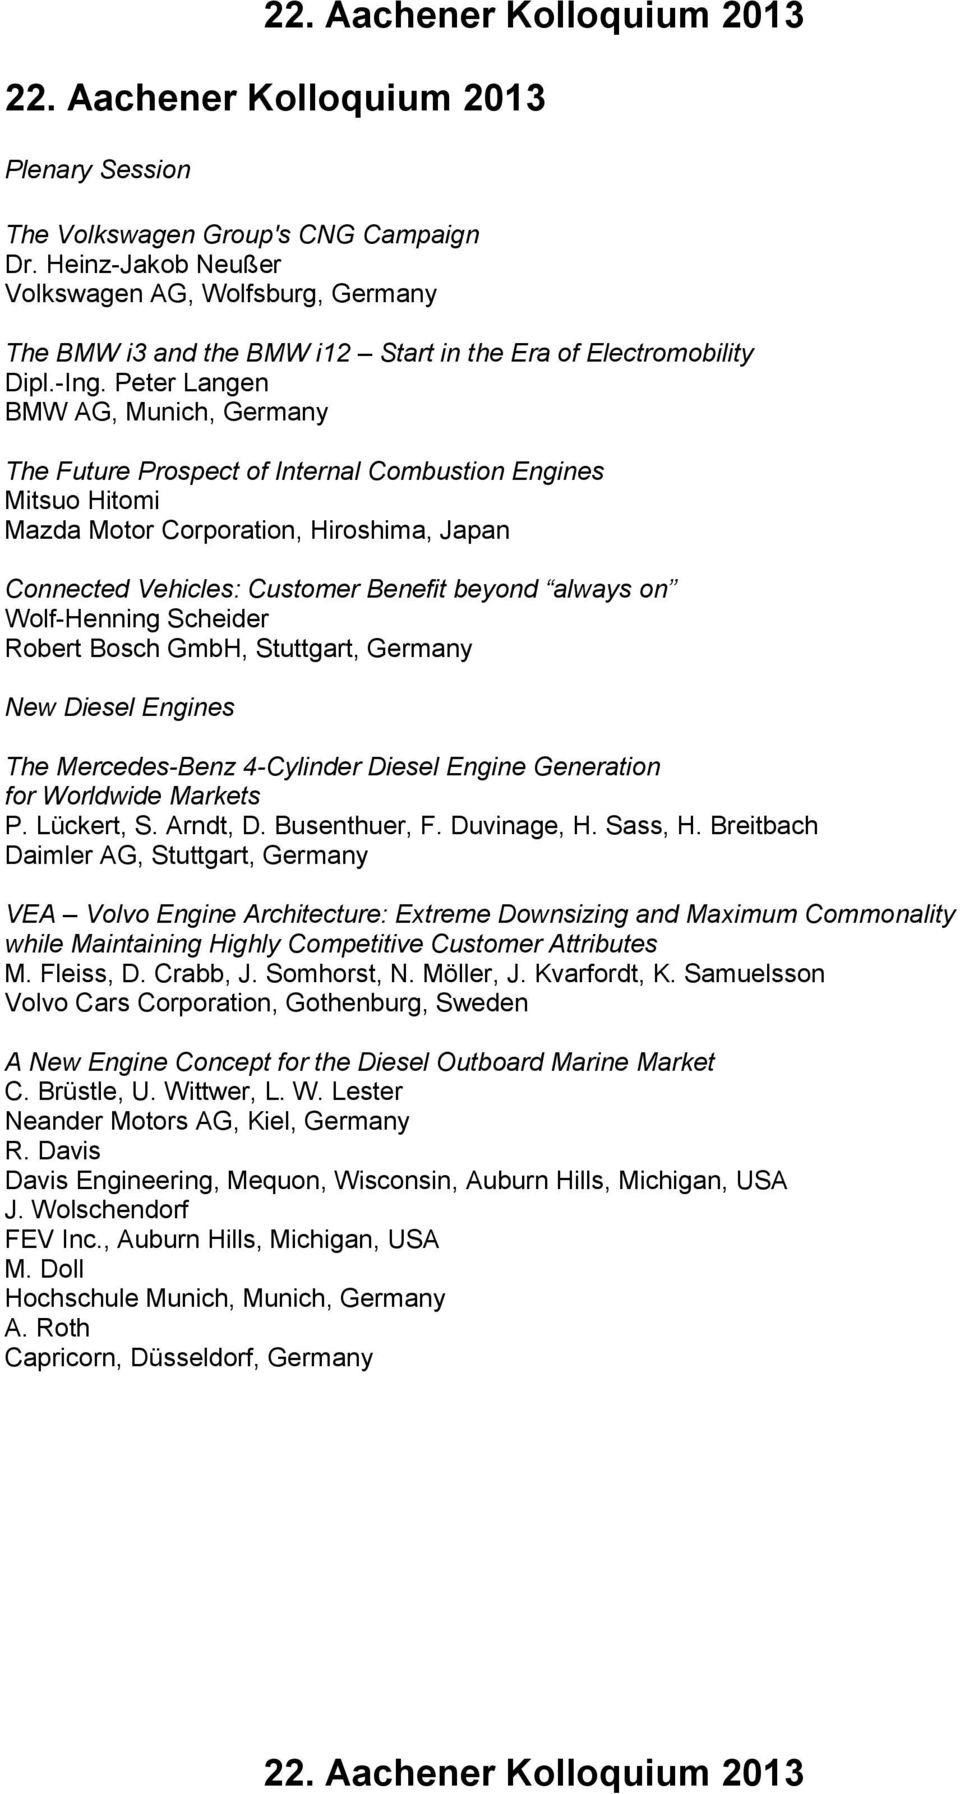 Peter Langen BMW AG, Munich, Germany The Future Prospect of Internal Combustion Engines Mitsuo Hitomi Mazda Motor Corporation, Hiroshima, Japan Connected Vehicles: Customer Benefit beyond always on